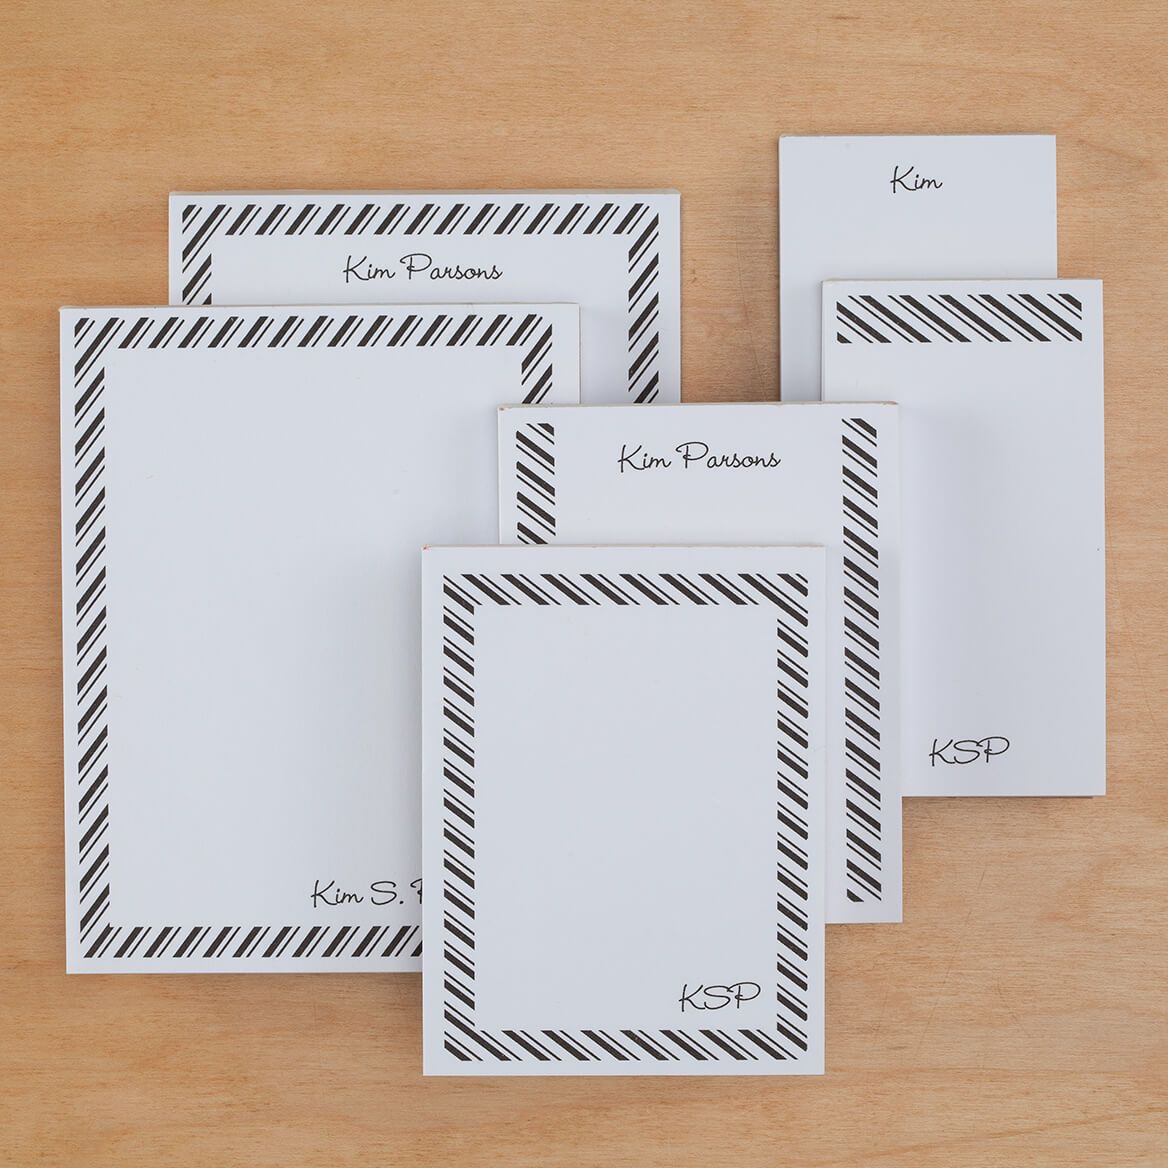 Personalized Diagonal Stripes Notepads Refill Set of 6-349460